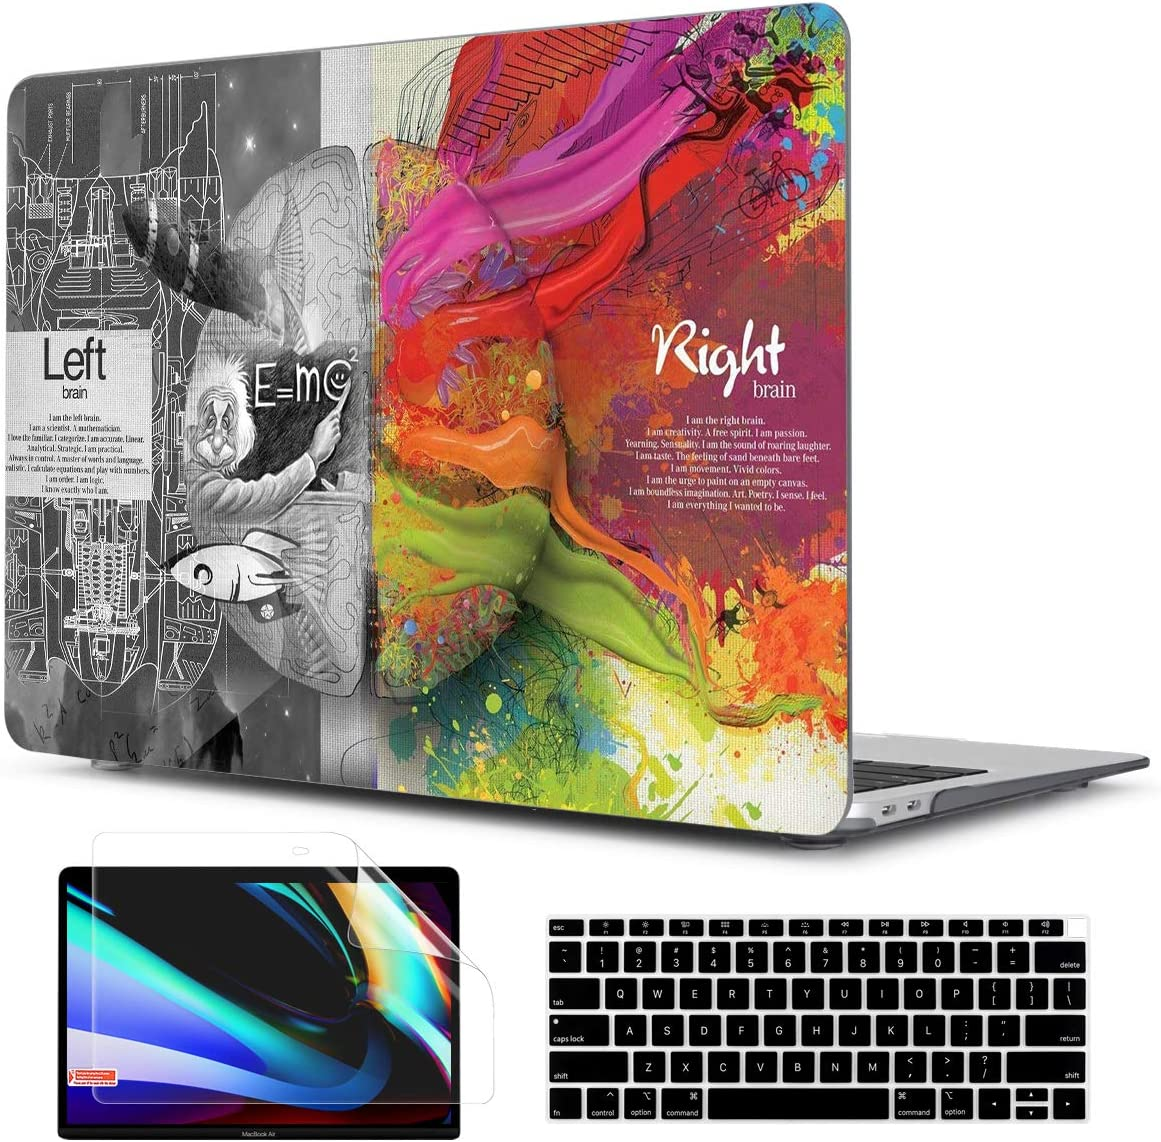 TwoL Hard Plastic Case Silicone Keyboard Skin and Screen Protector for MacBook Air 13 inch A1932 A2179 Release 2018-2020 with Retina Display/Touch ID Creative Brain